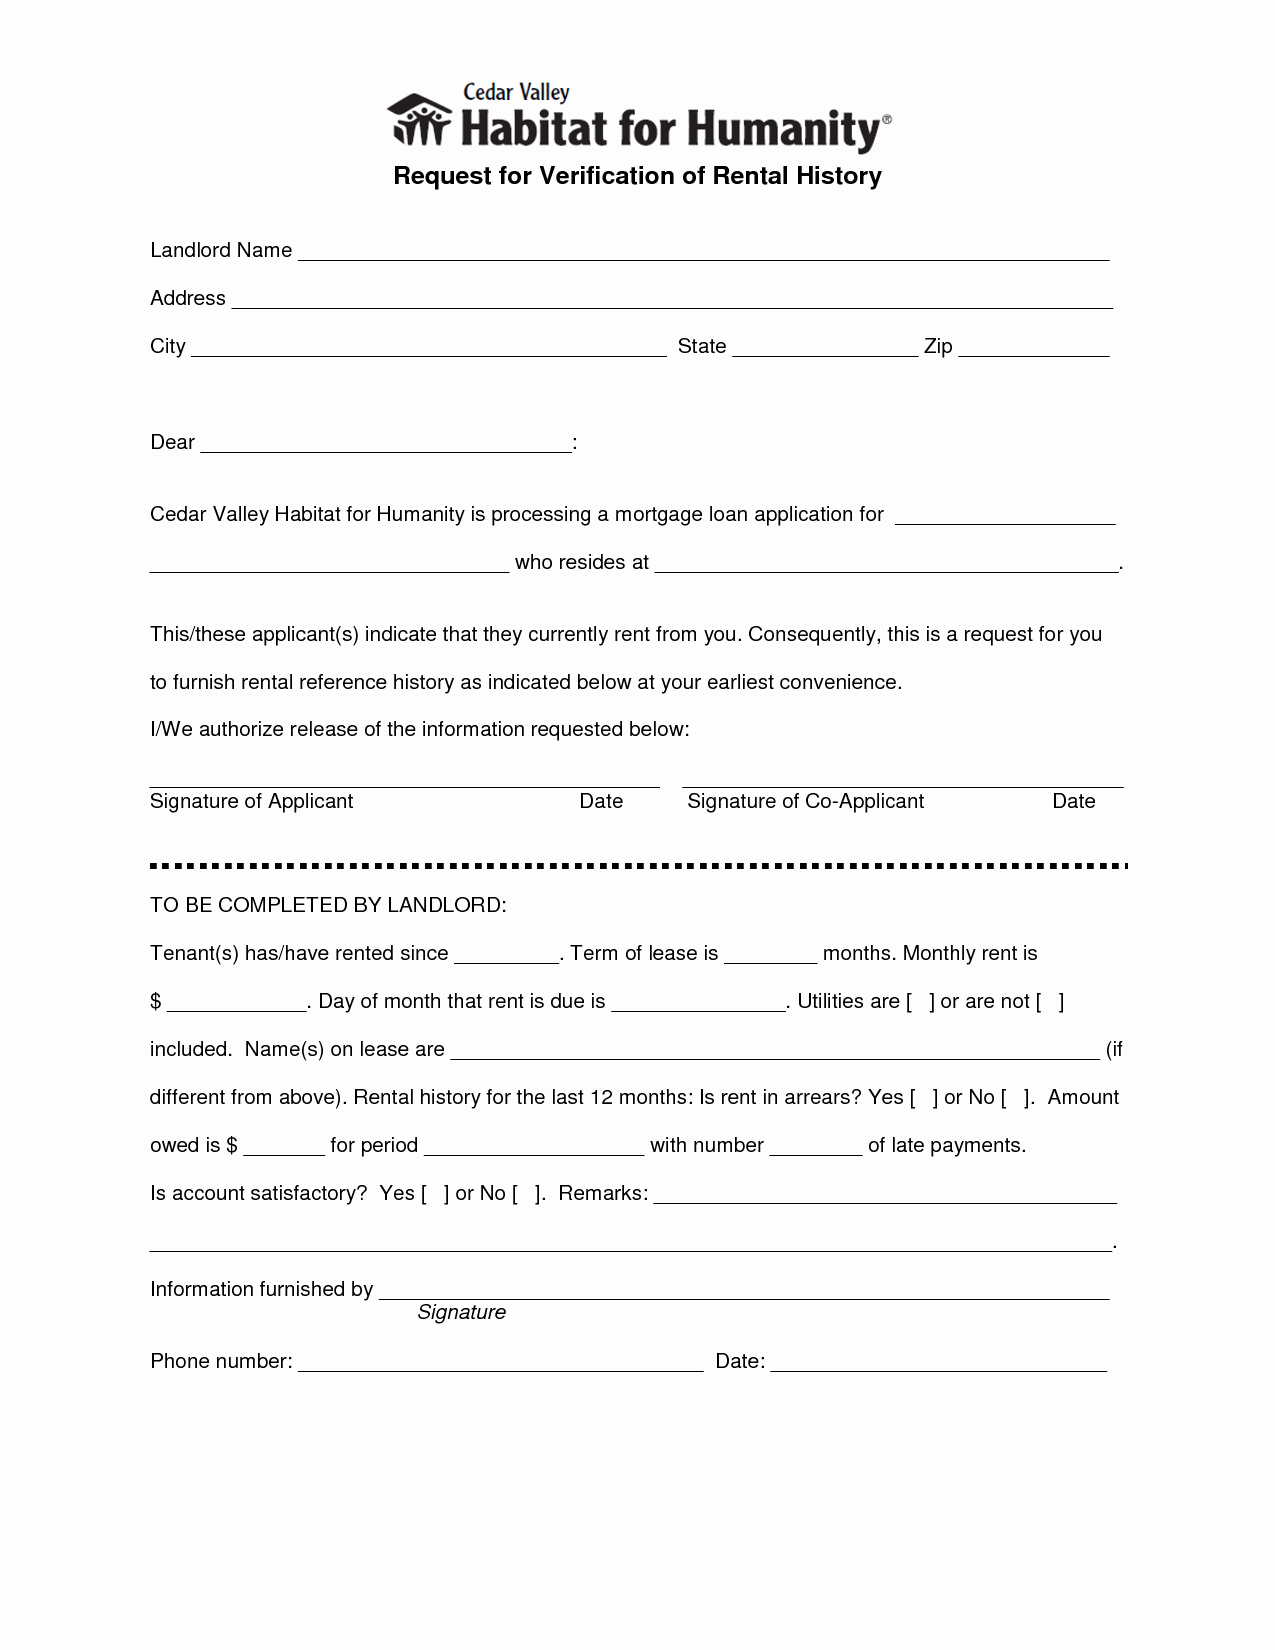 Proof Of Rent Payment Letter New Best S Of Landlord Verification form Free Rental